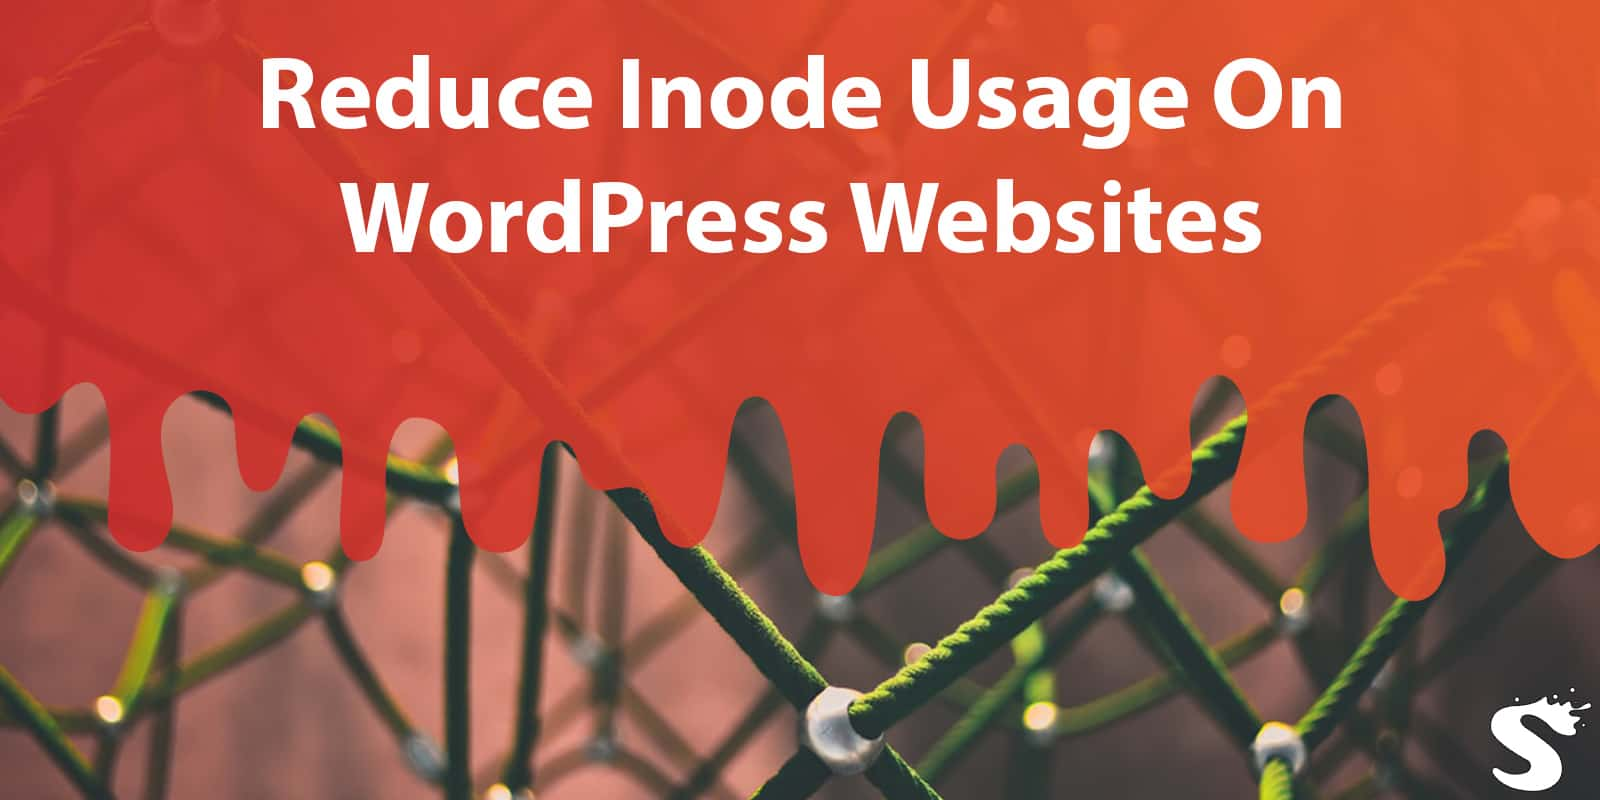 6 Tips To Reduce Inode Usage On WordPress Websites